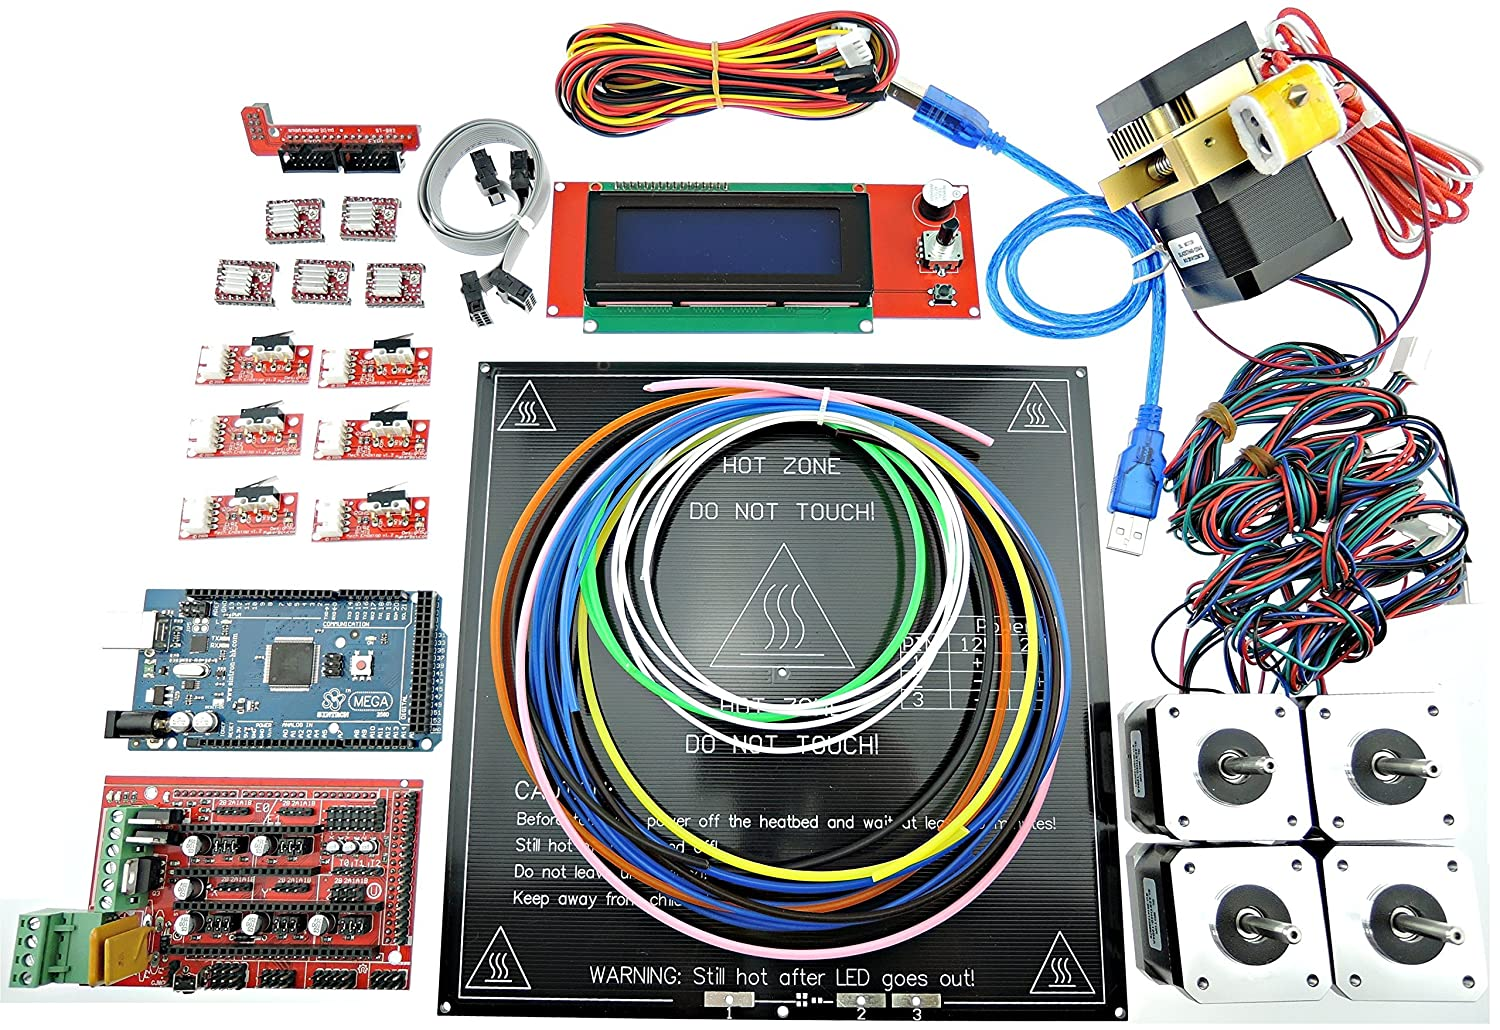 Sintron Ultimate 3d Printer Full Complete Kit For Diy Circuit Board 7 Wire 2 Fuse Pcb Printed Reprap Prusa I3 Ramps 14 Mega 2560 Mk8 Extruder Mk3 Heatbed Stepper Motor And Lcd